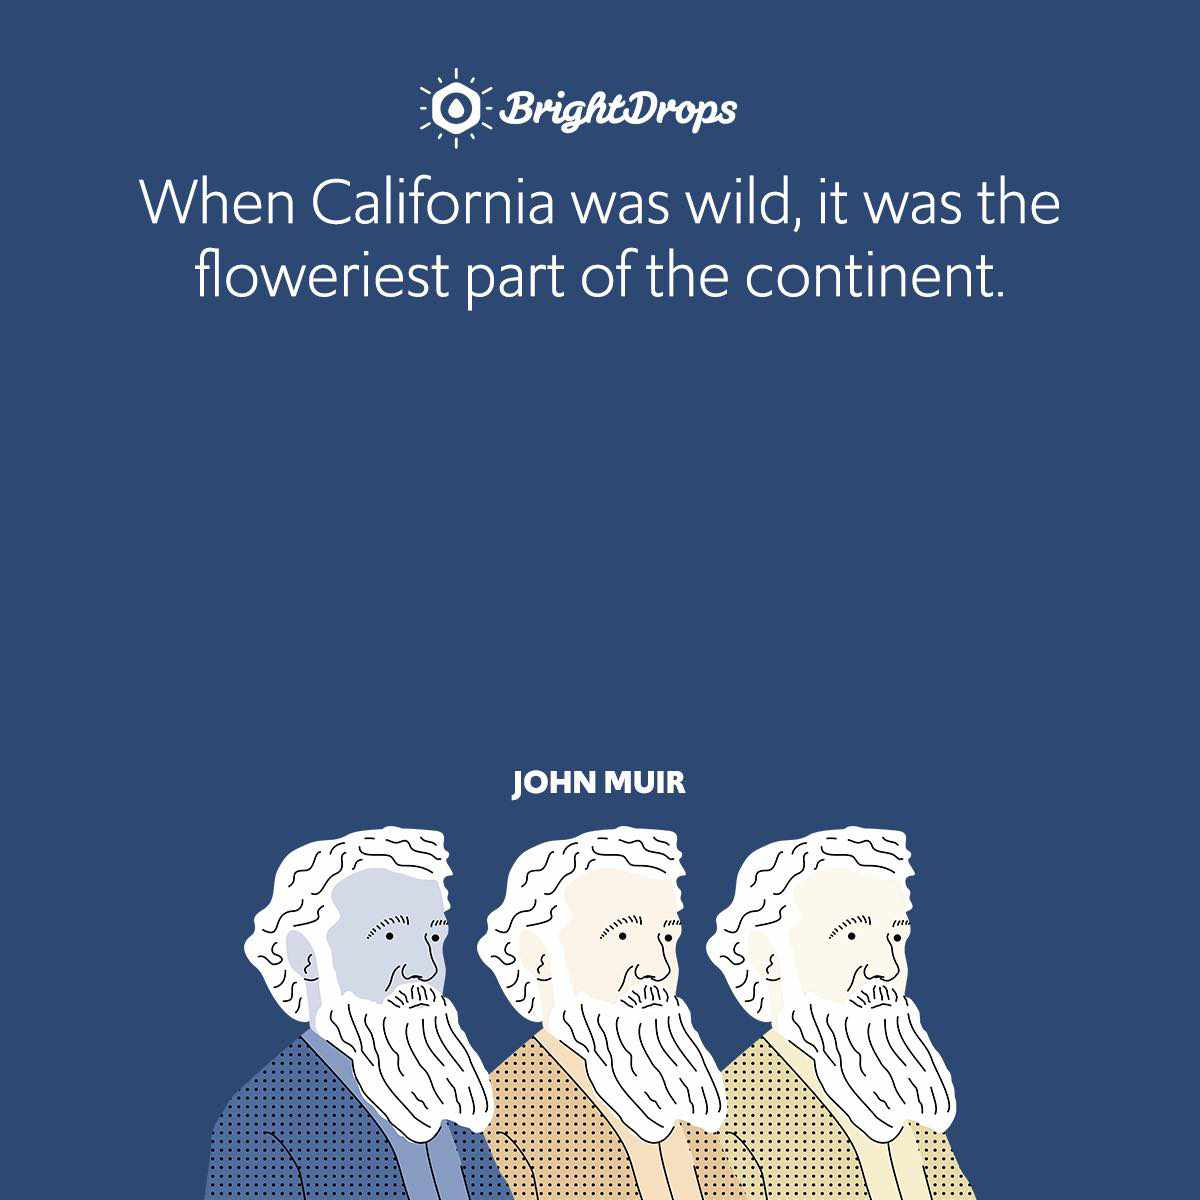 When California was wild, it was the floweriest part of the continent.